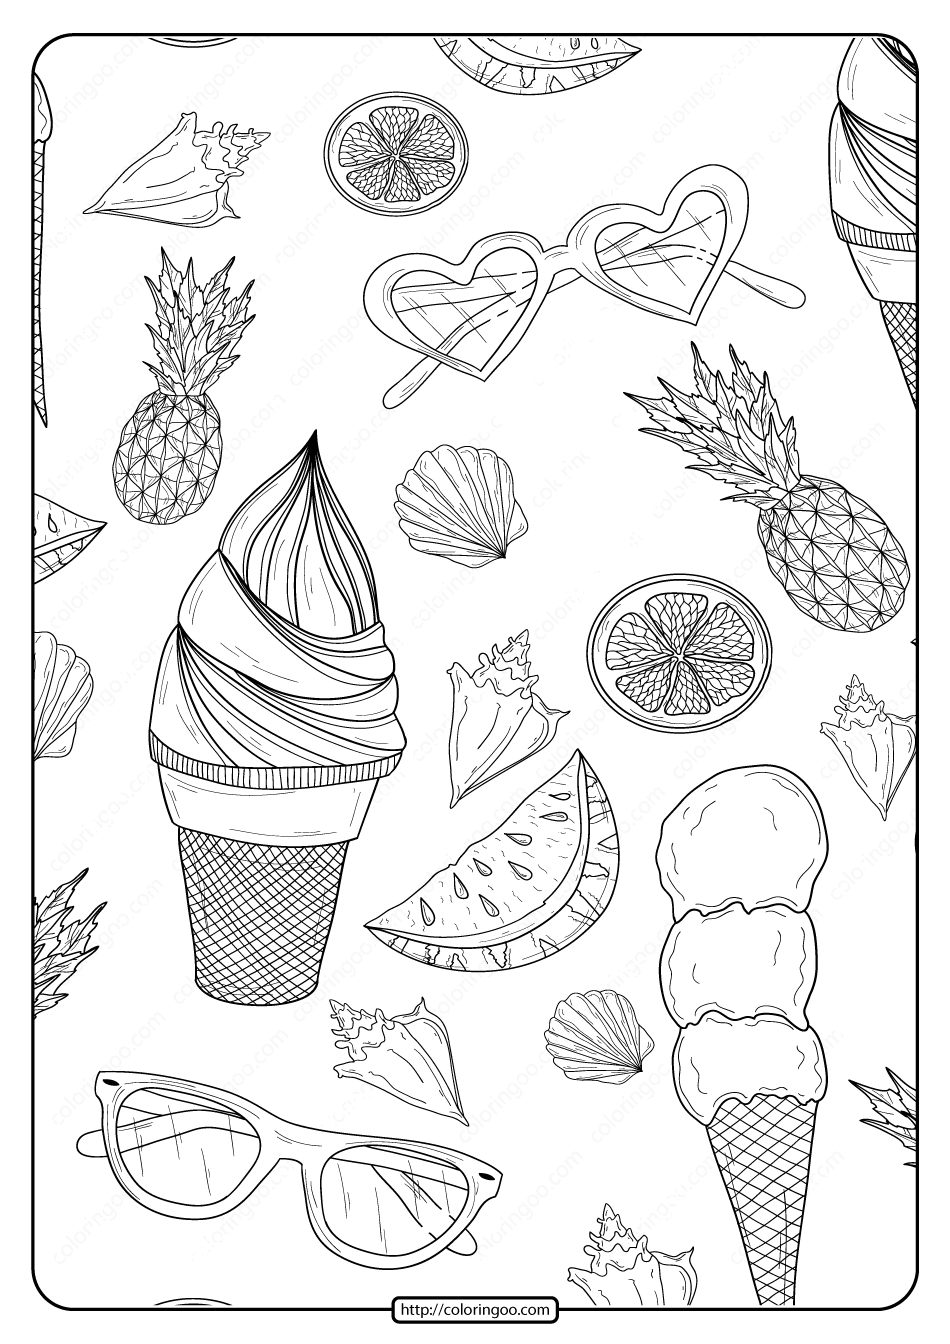 summer coloring sheets summer fun coloring pages to download and print for free summer coloring sheets